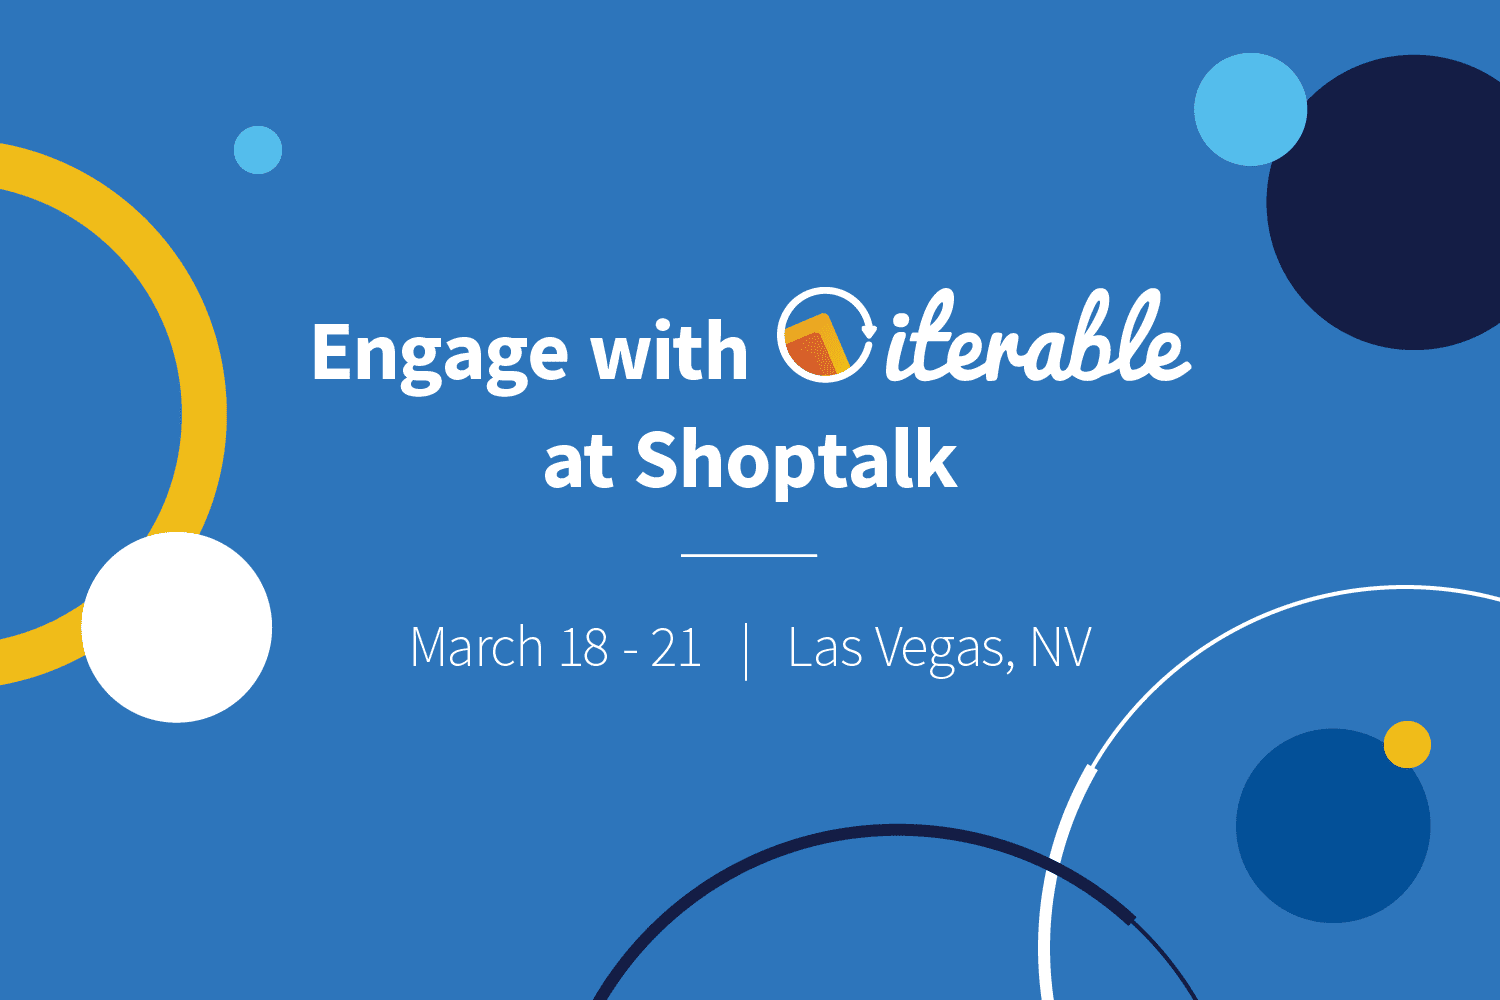 Engage with Iterable at Shoptalk